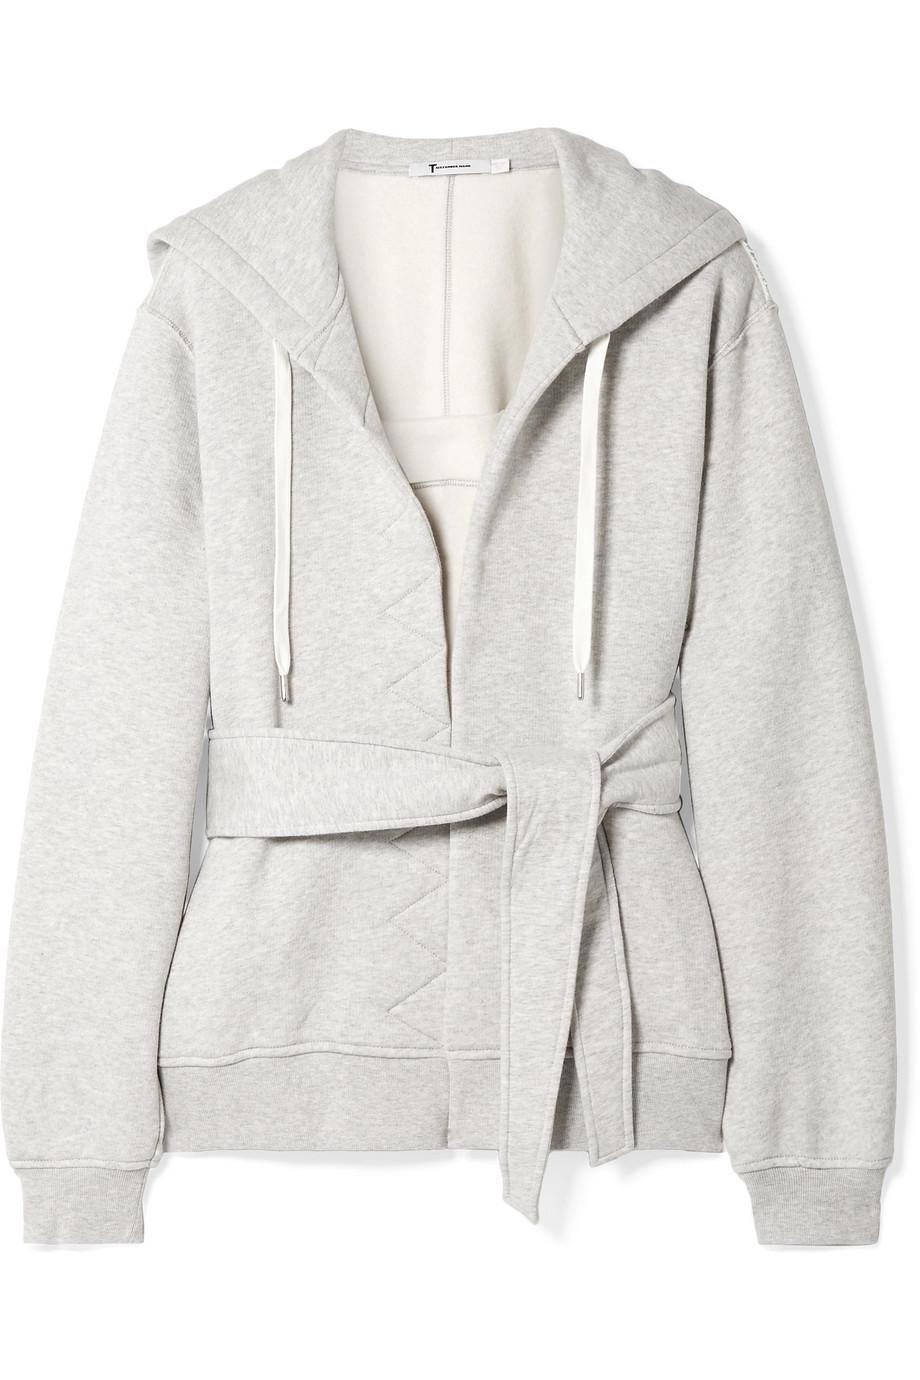 8d1af4ffbc56 Lyst - T By Alexander Wang Belted Cotton-fleece Hooded Top in Gray